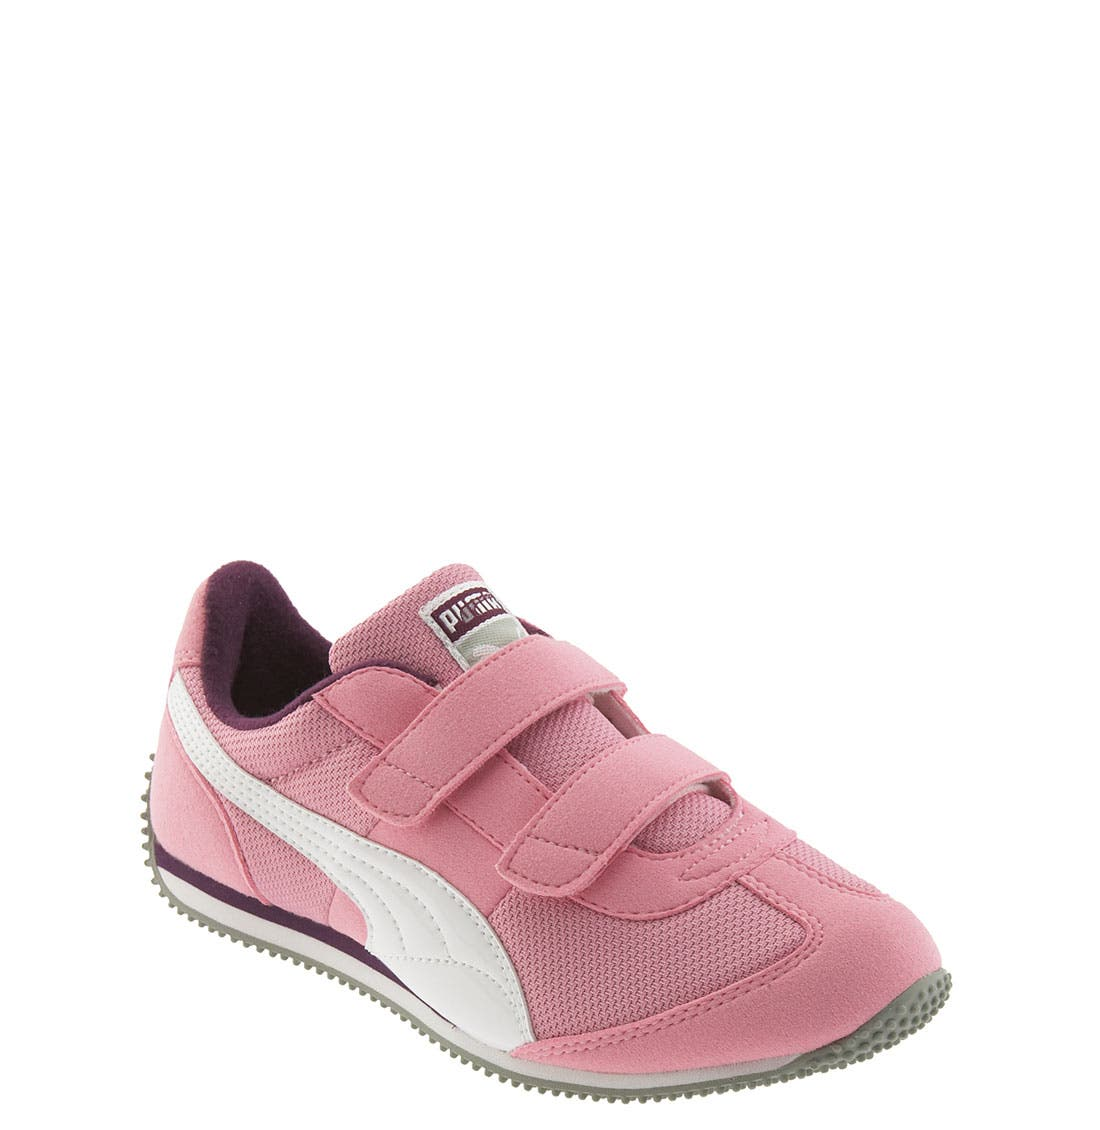 Main Image - Puma 'Speeder Mesh' Sneaker (Baby, Walker, Toddler & Little Kid)